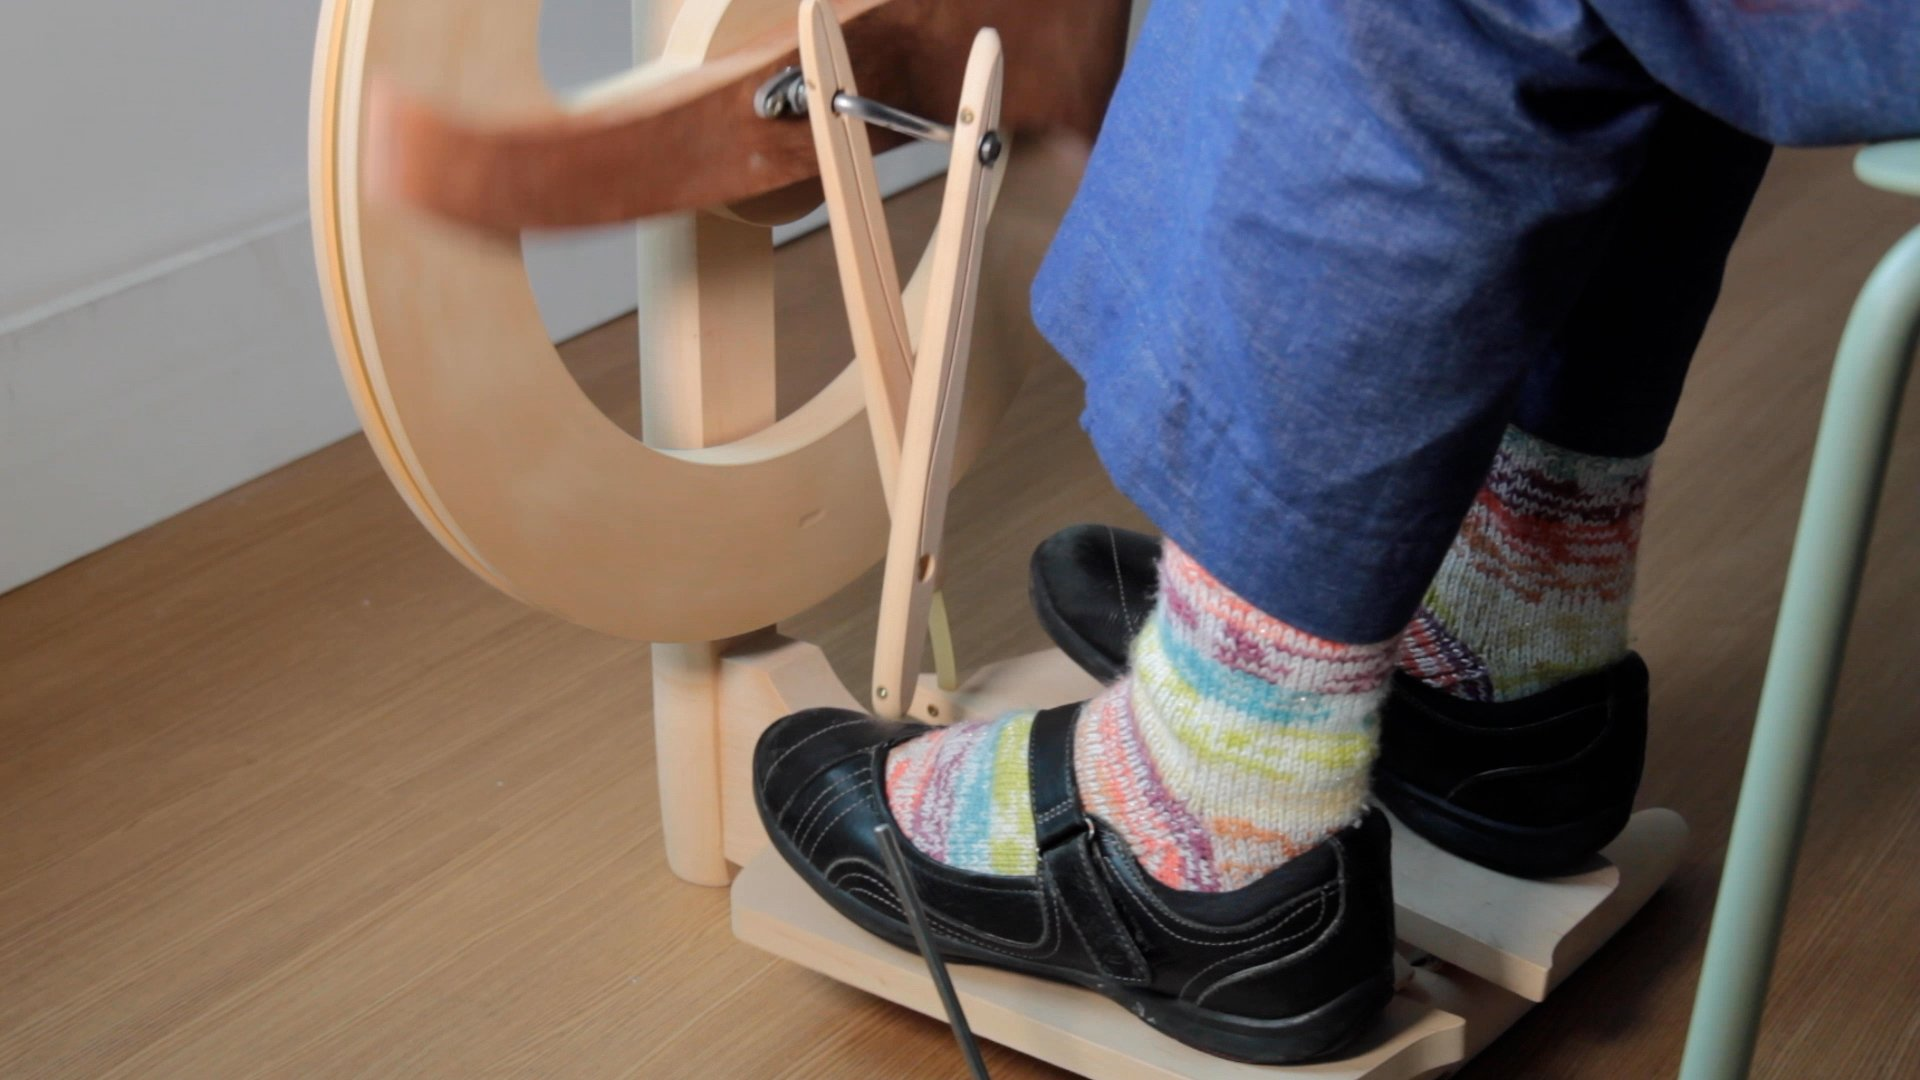 Someone using their foot to spin a spinning wheel